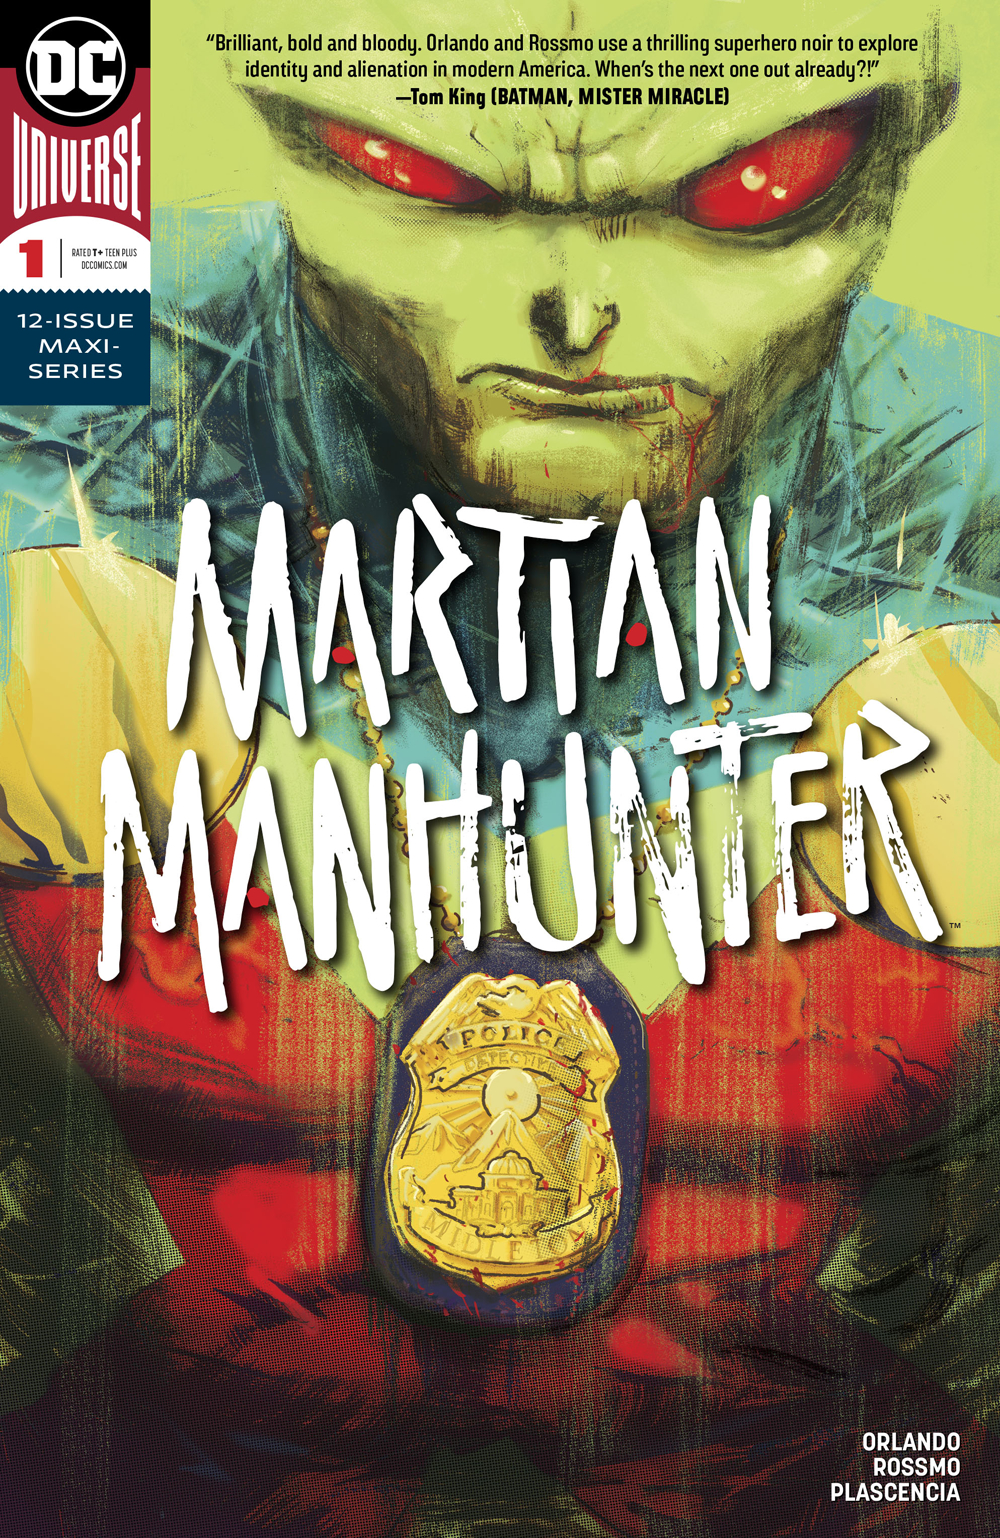 Martian Manhunter #1  is out 12/5.